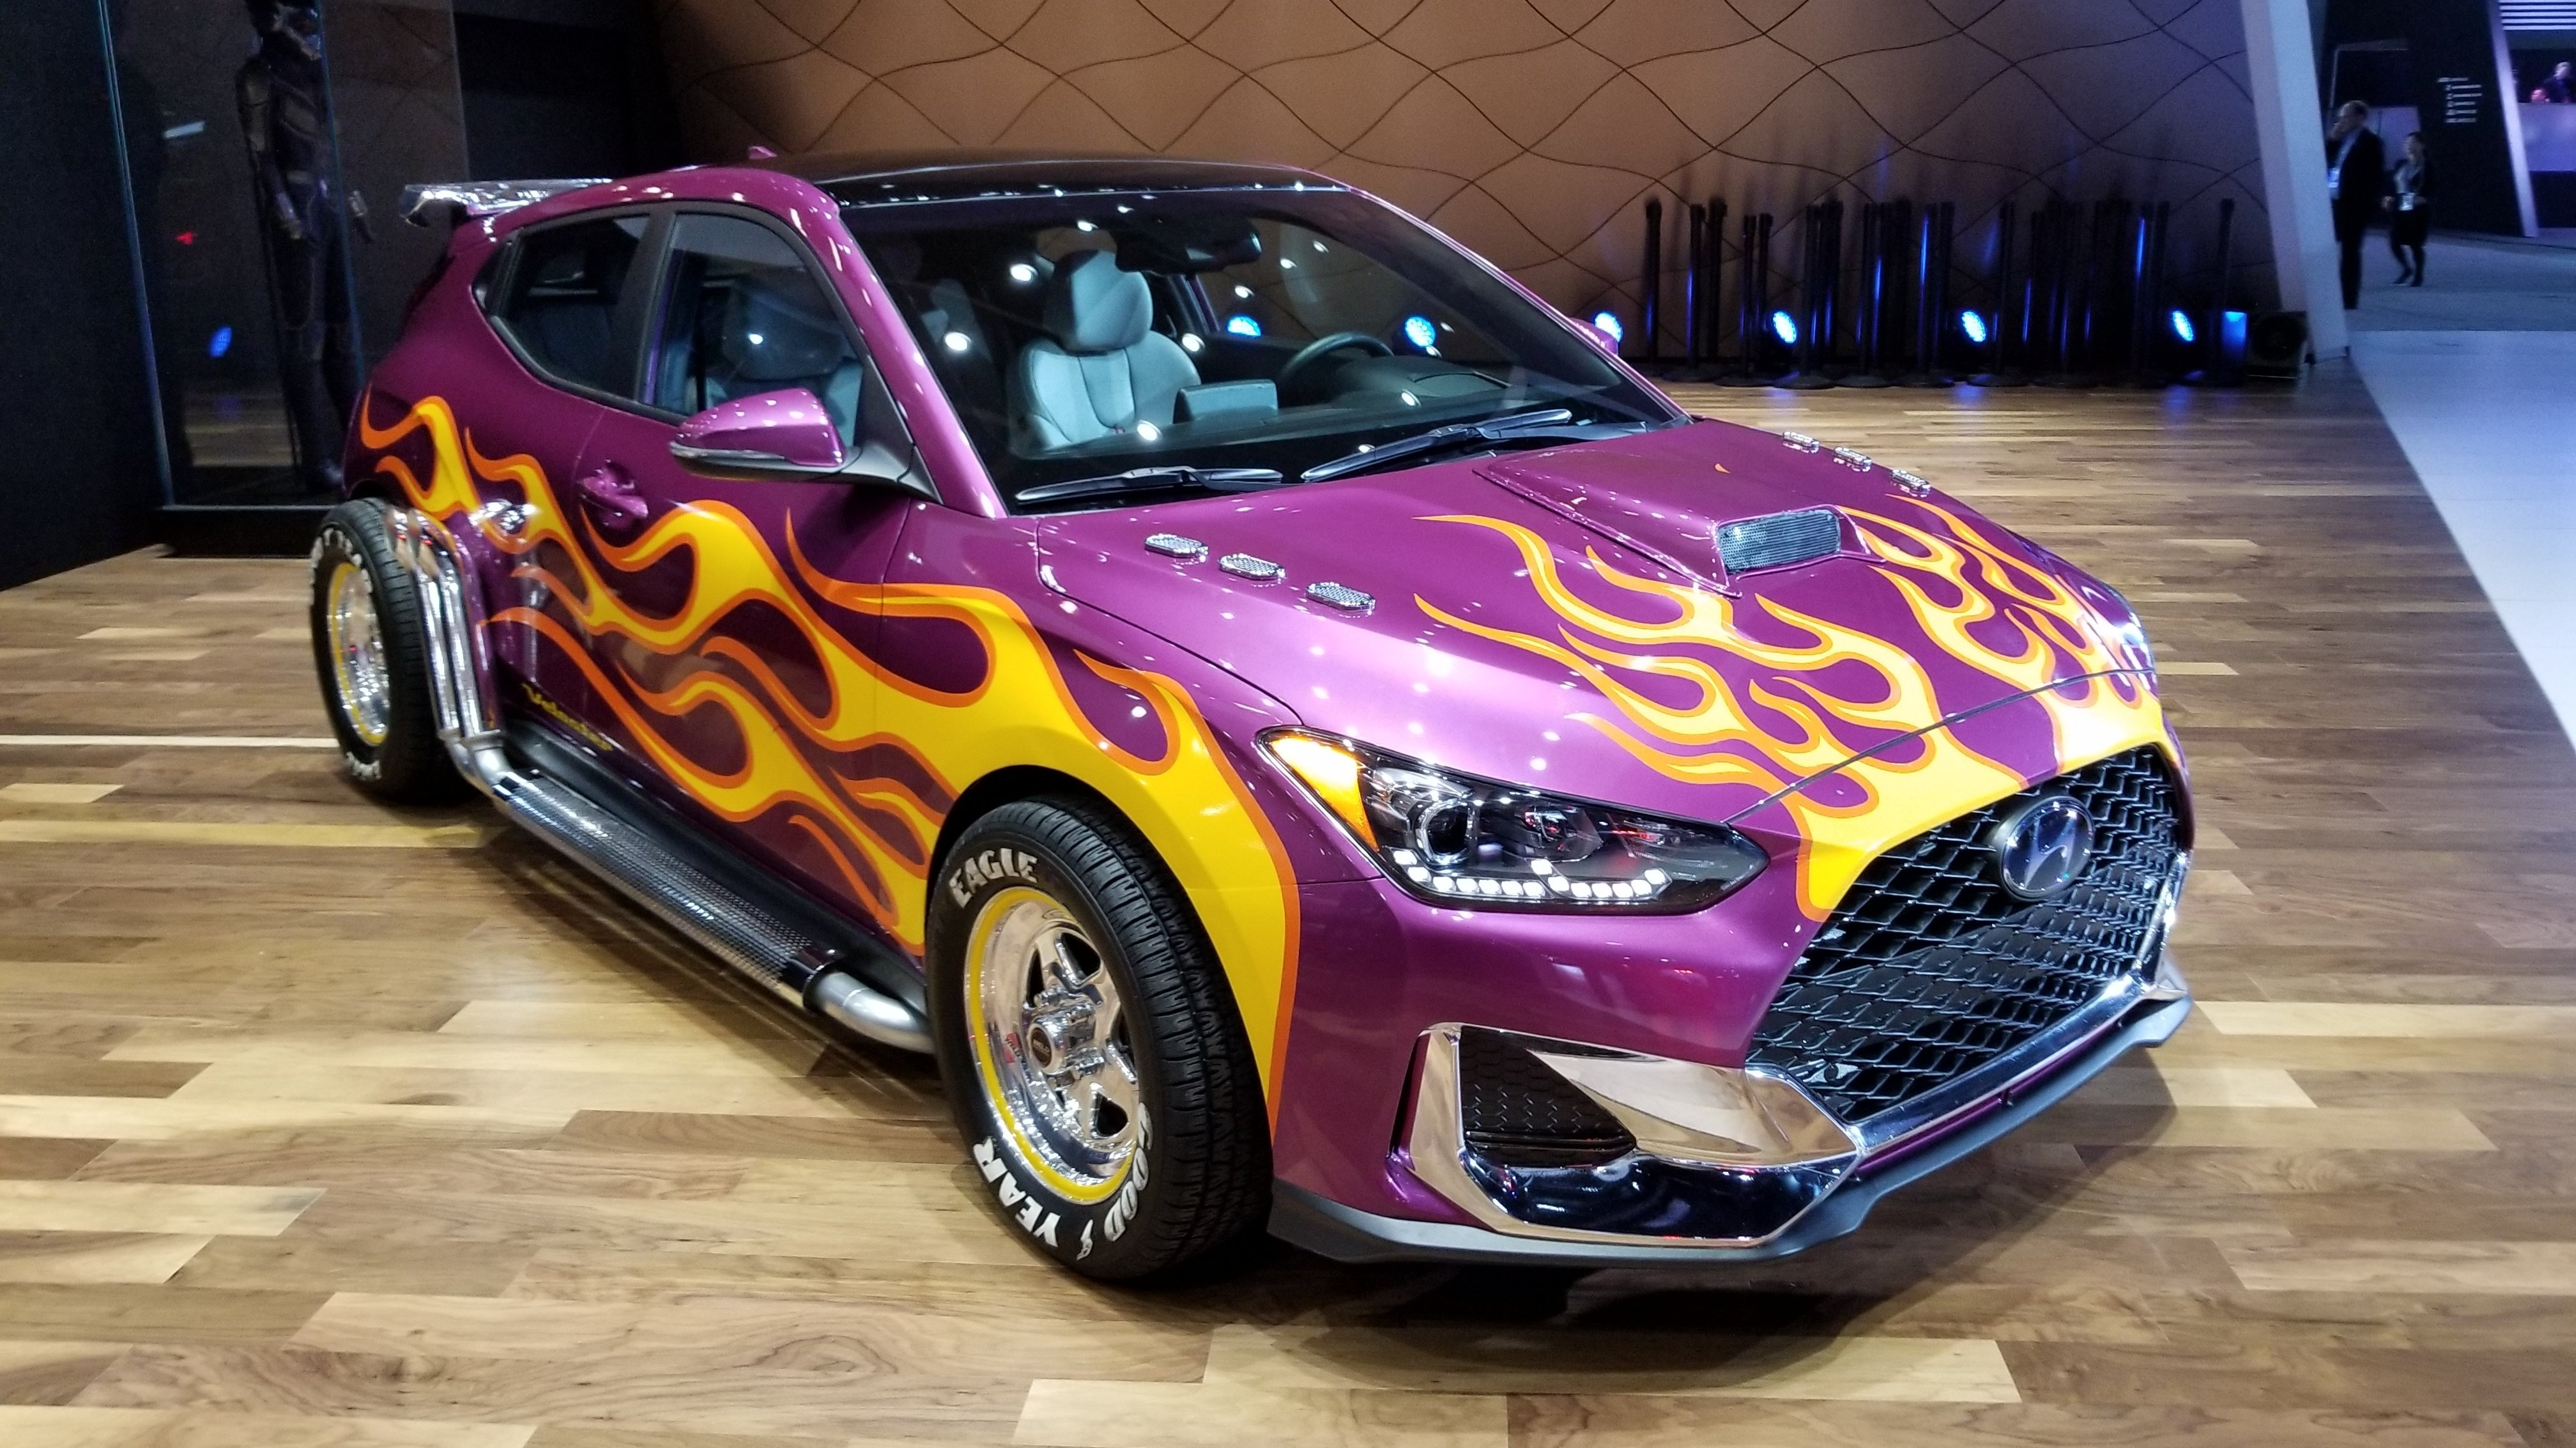 Ant Man And The Wasp Veloster Proves Hyundai Deserves A Place In The Marvel Universe Move Ten